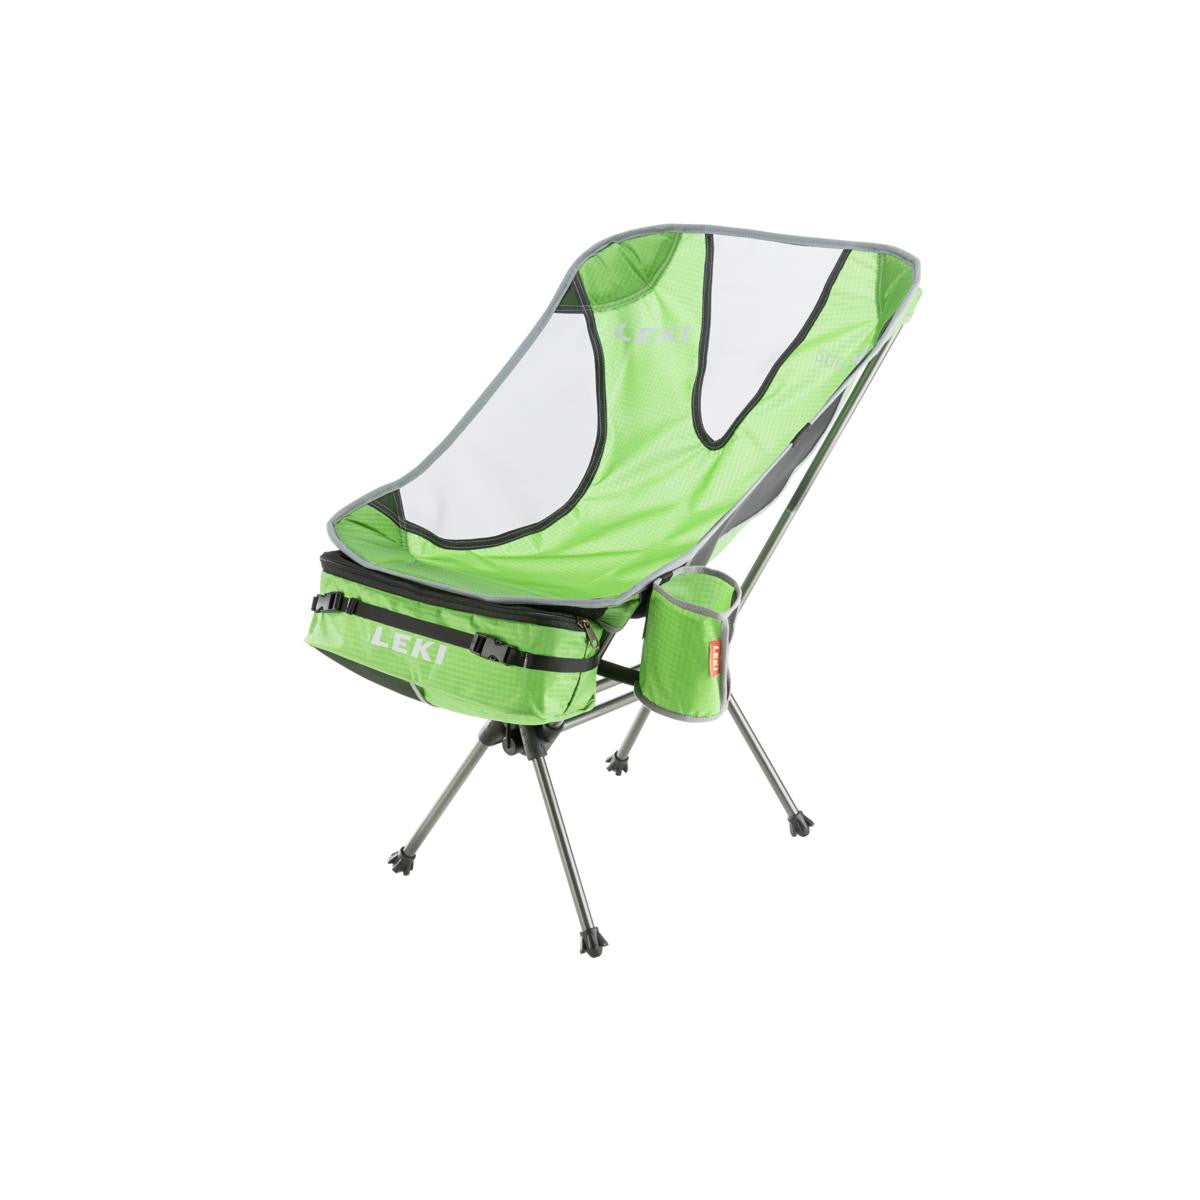 Leki Sub 1 Folding Chair